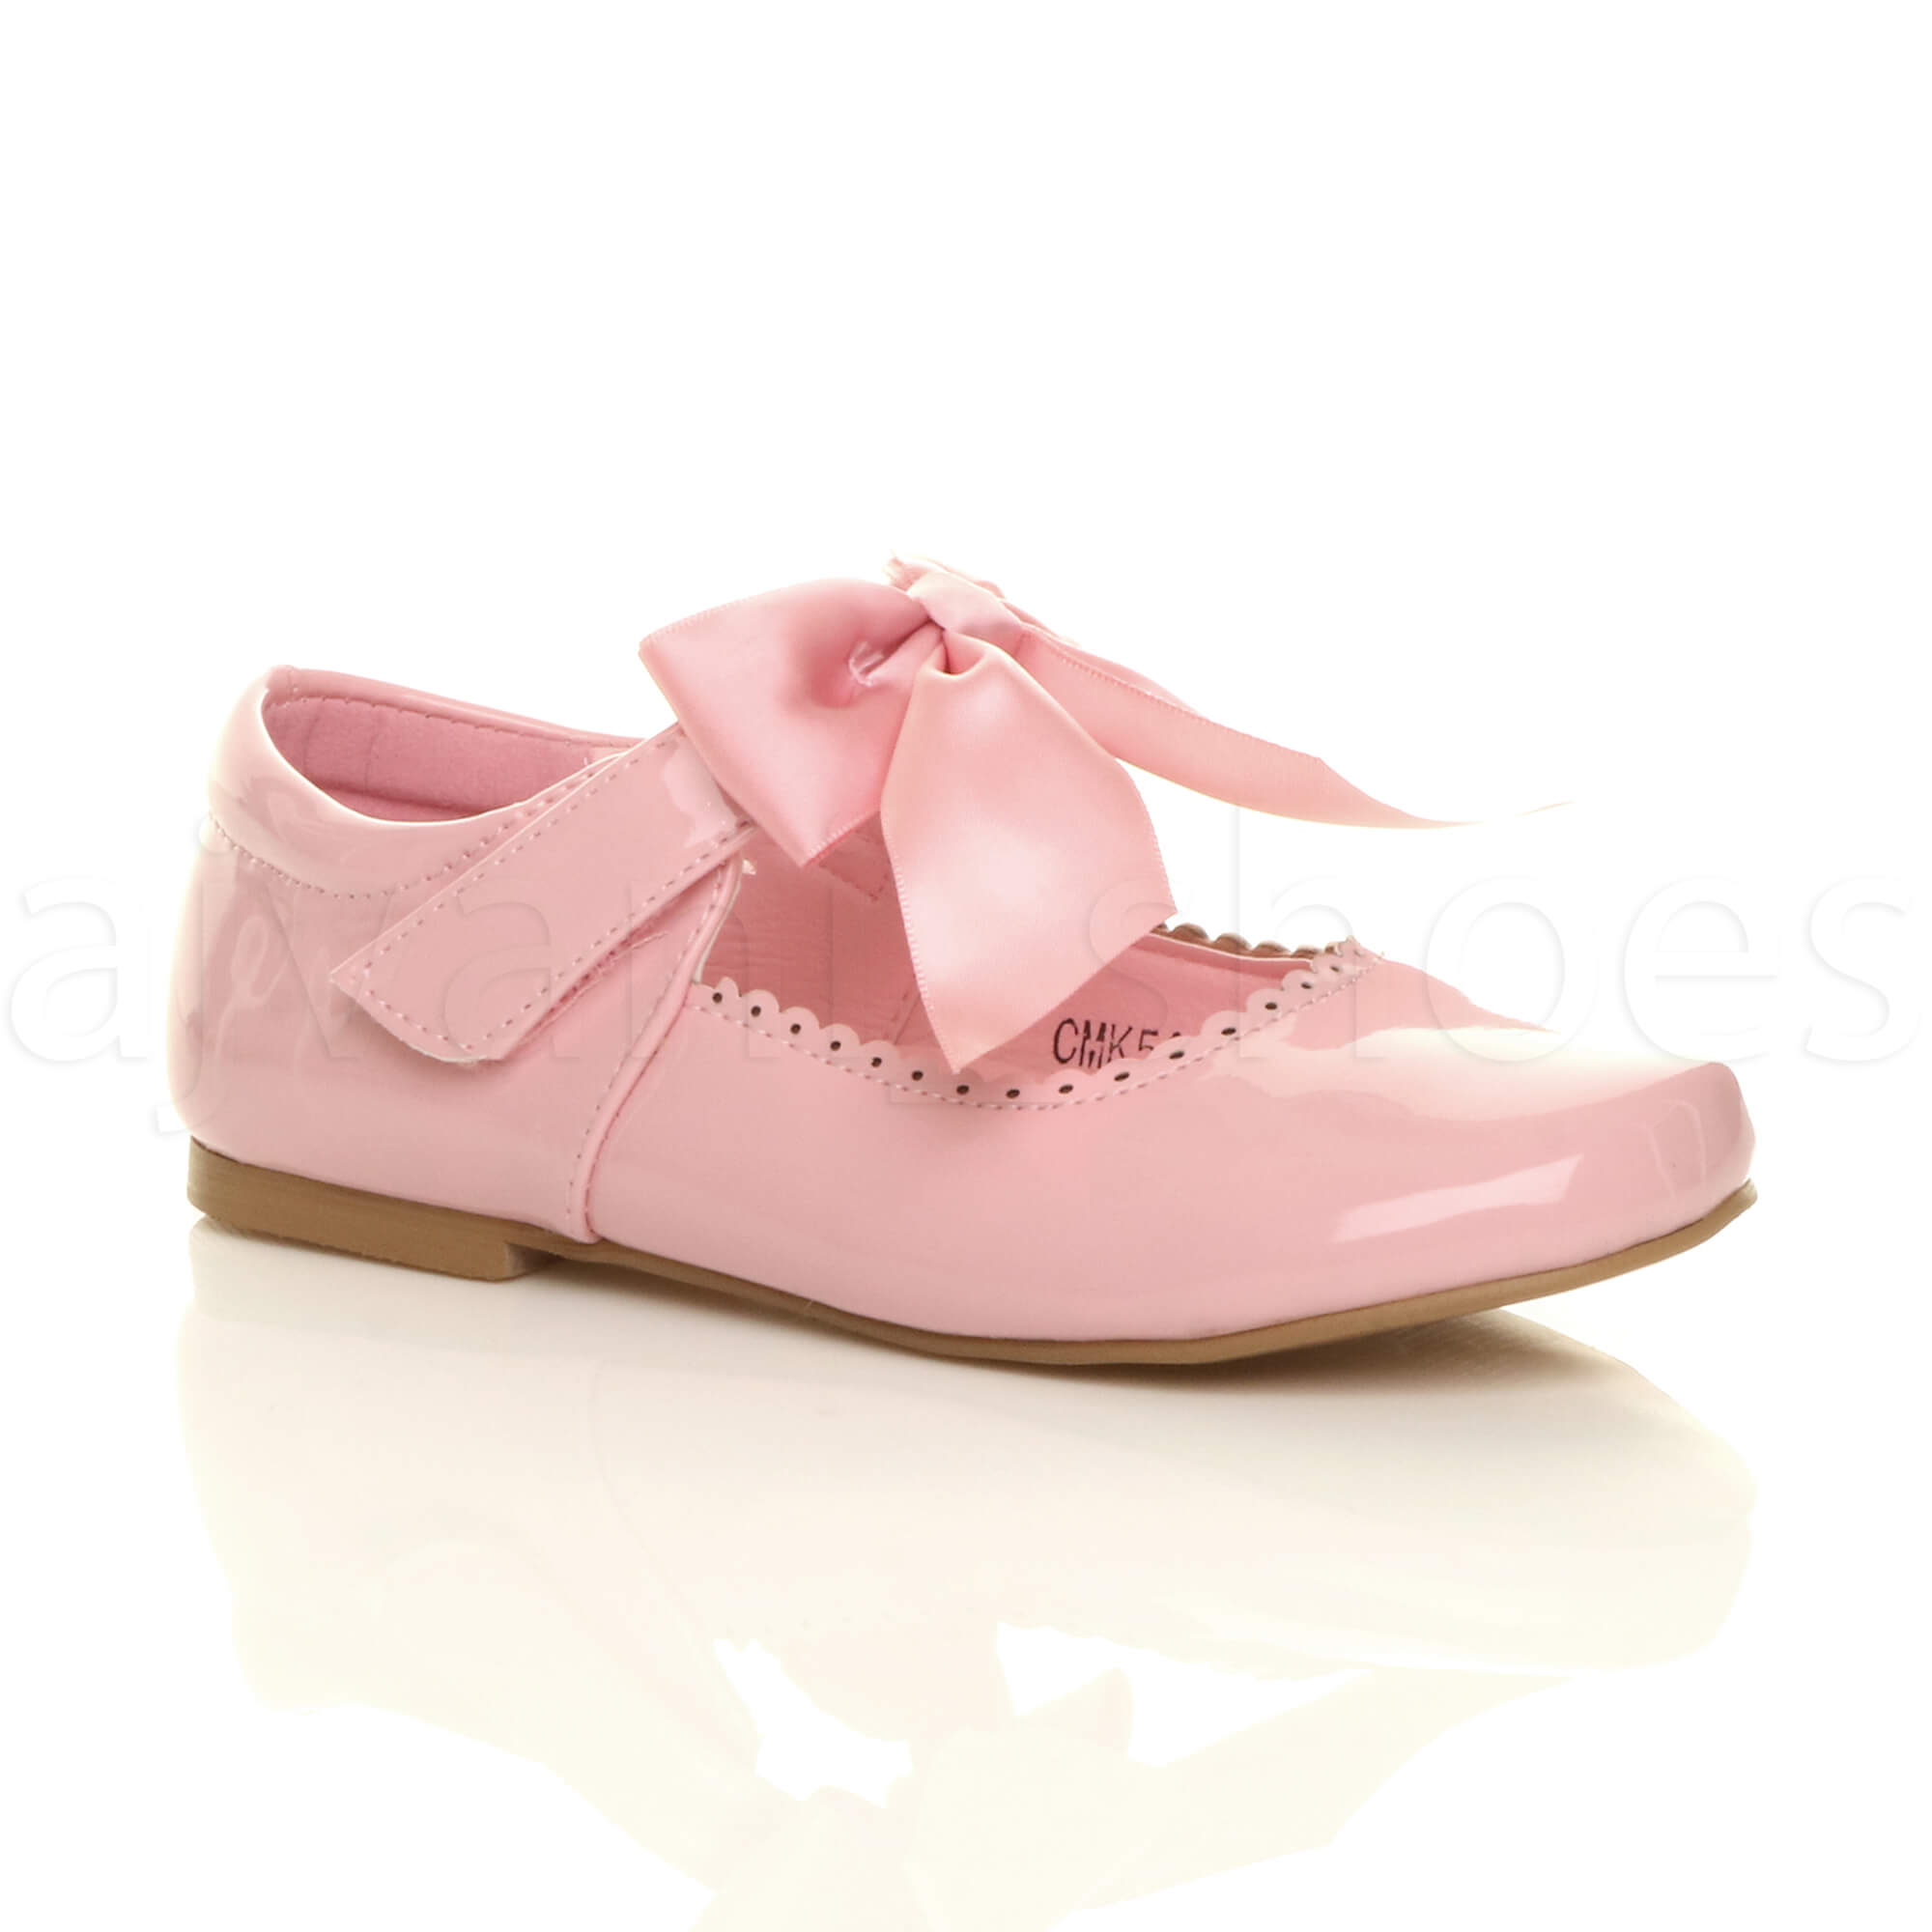 GIRLS-CHILDRENS-KIDS-RIBBON-BOW-SCALLOPED-BRIDESMAID-PARTY-MARY-JANE-SHOES-SIZE